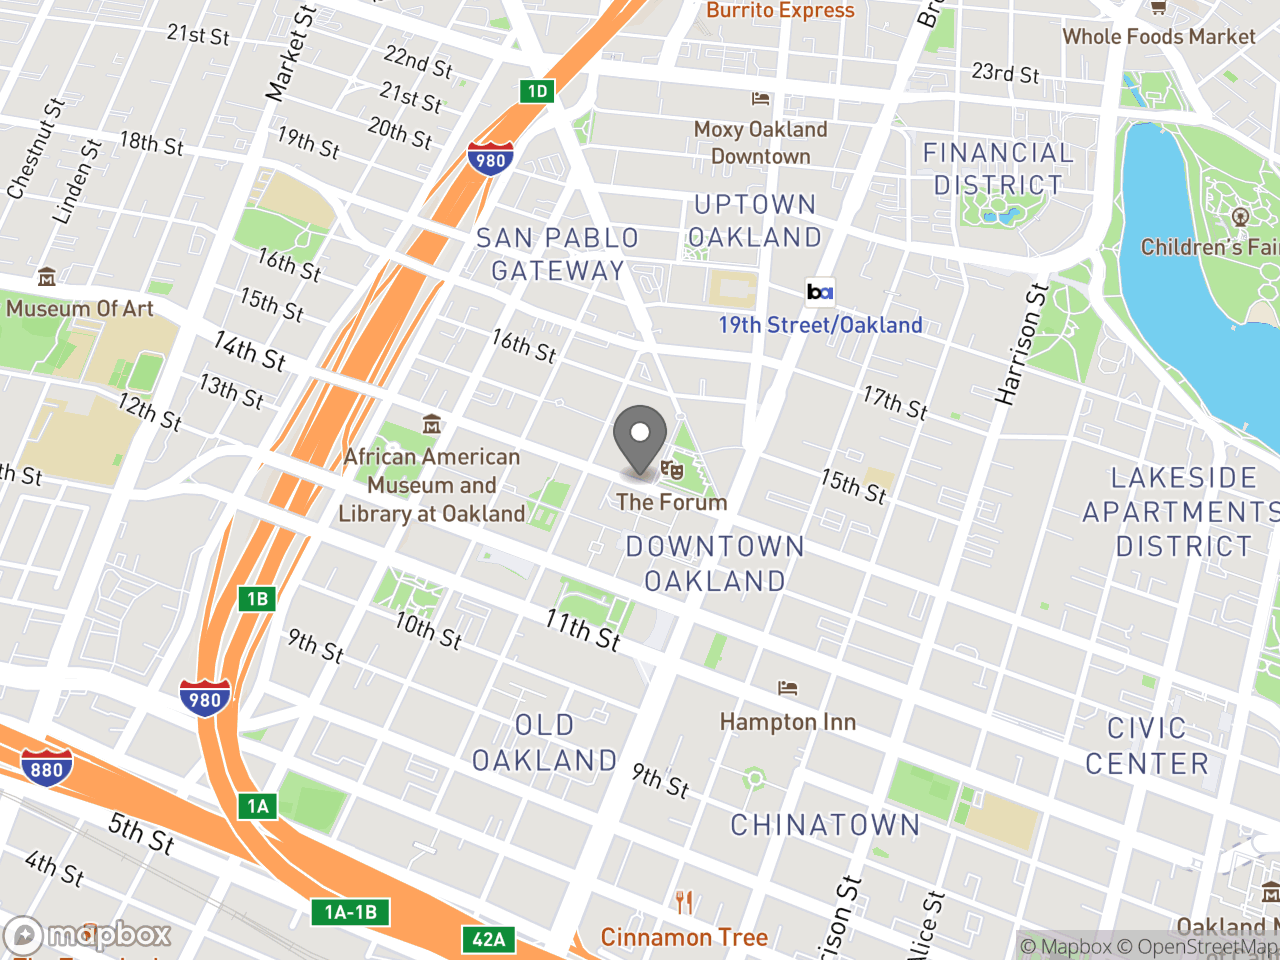 Map location for Mayor's Commission on Persons with Disabilities July 15, 2019, located at 1 Frank H Ogawa Plaza in Downtown Oakland, CA 94612